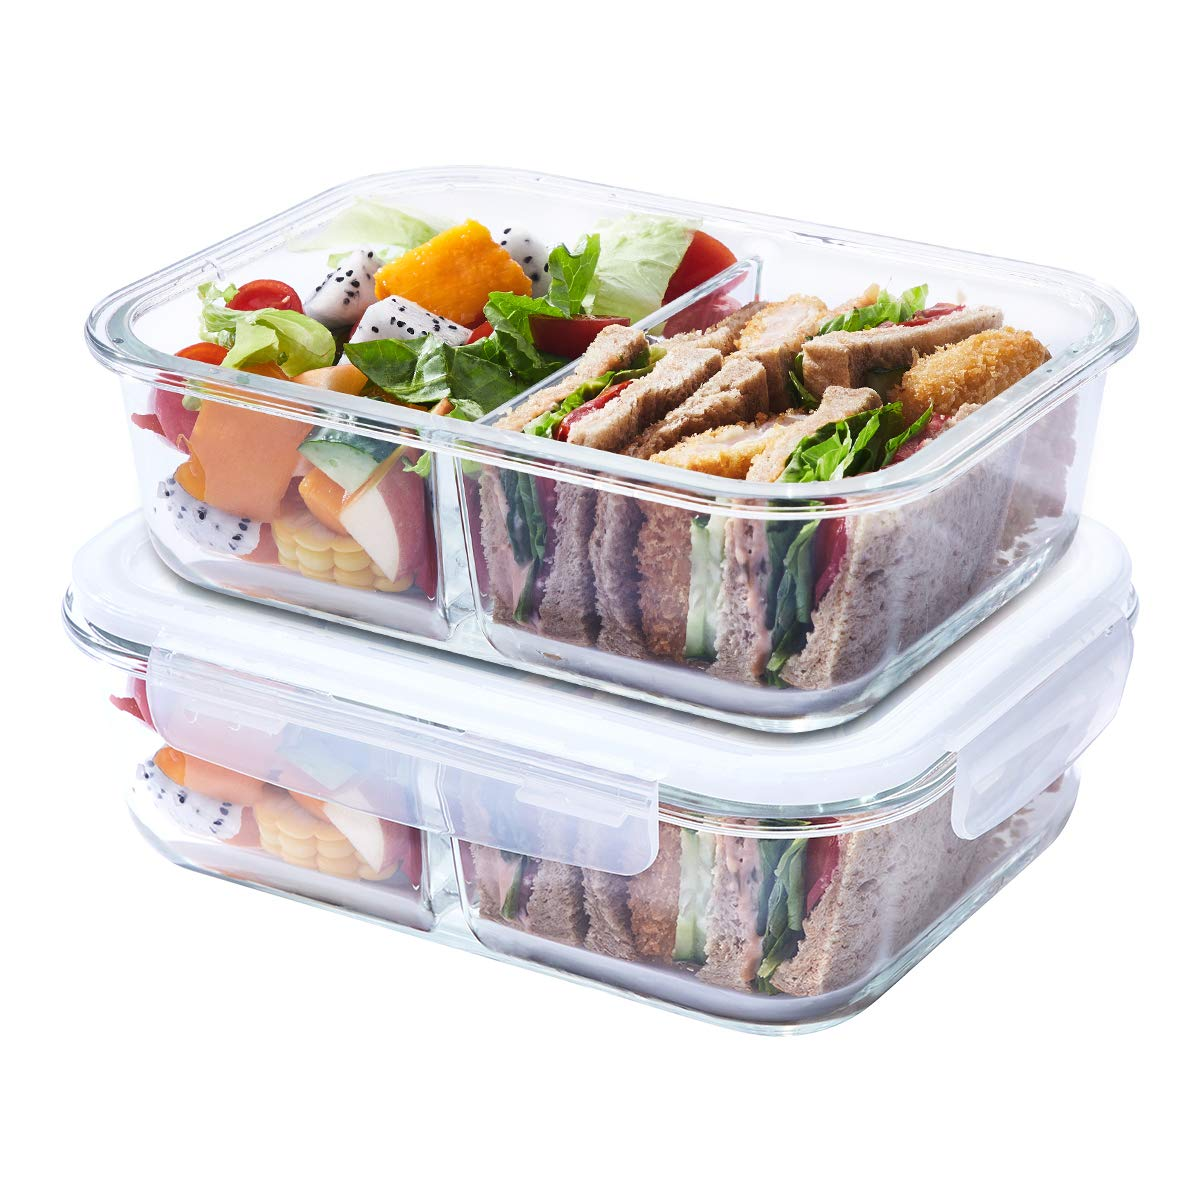 EASYLOCK 2 Compartment Meal Prep Glass Food Storage Containers with Locking Lids, BPA Free, Airtight Lunch Box, 33.8oz GHG031R-1